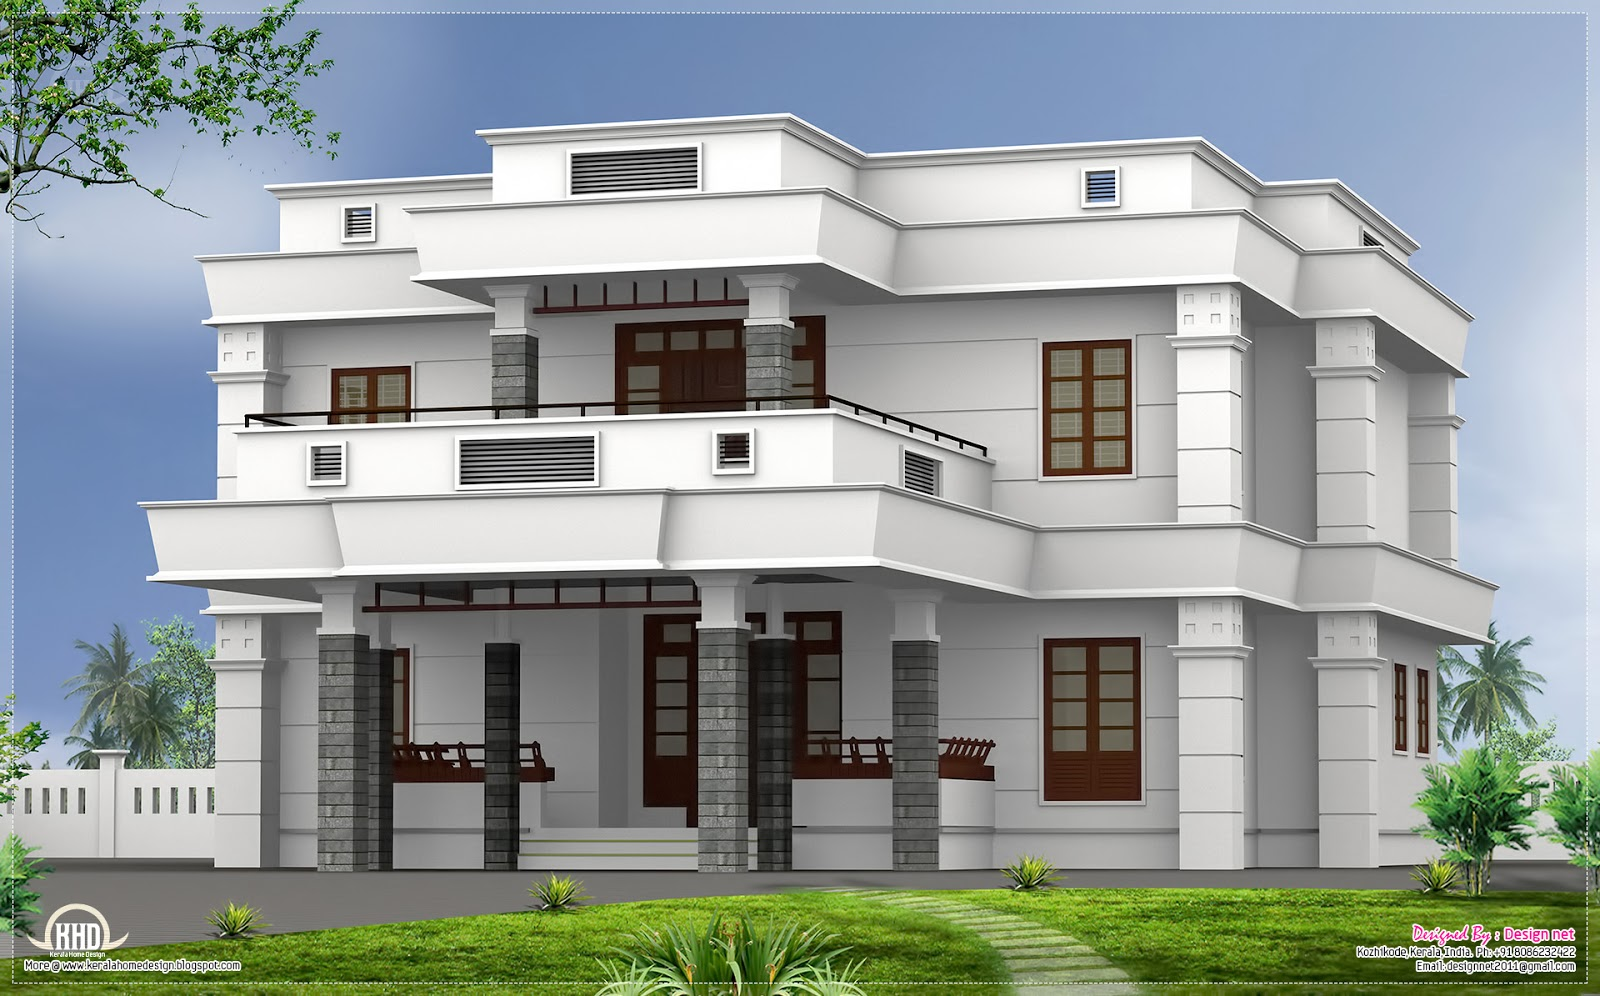 5 BHK Modern Flat Roof House Design Kerala Home Design And Floor Plans